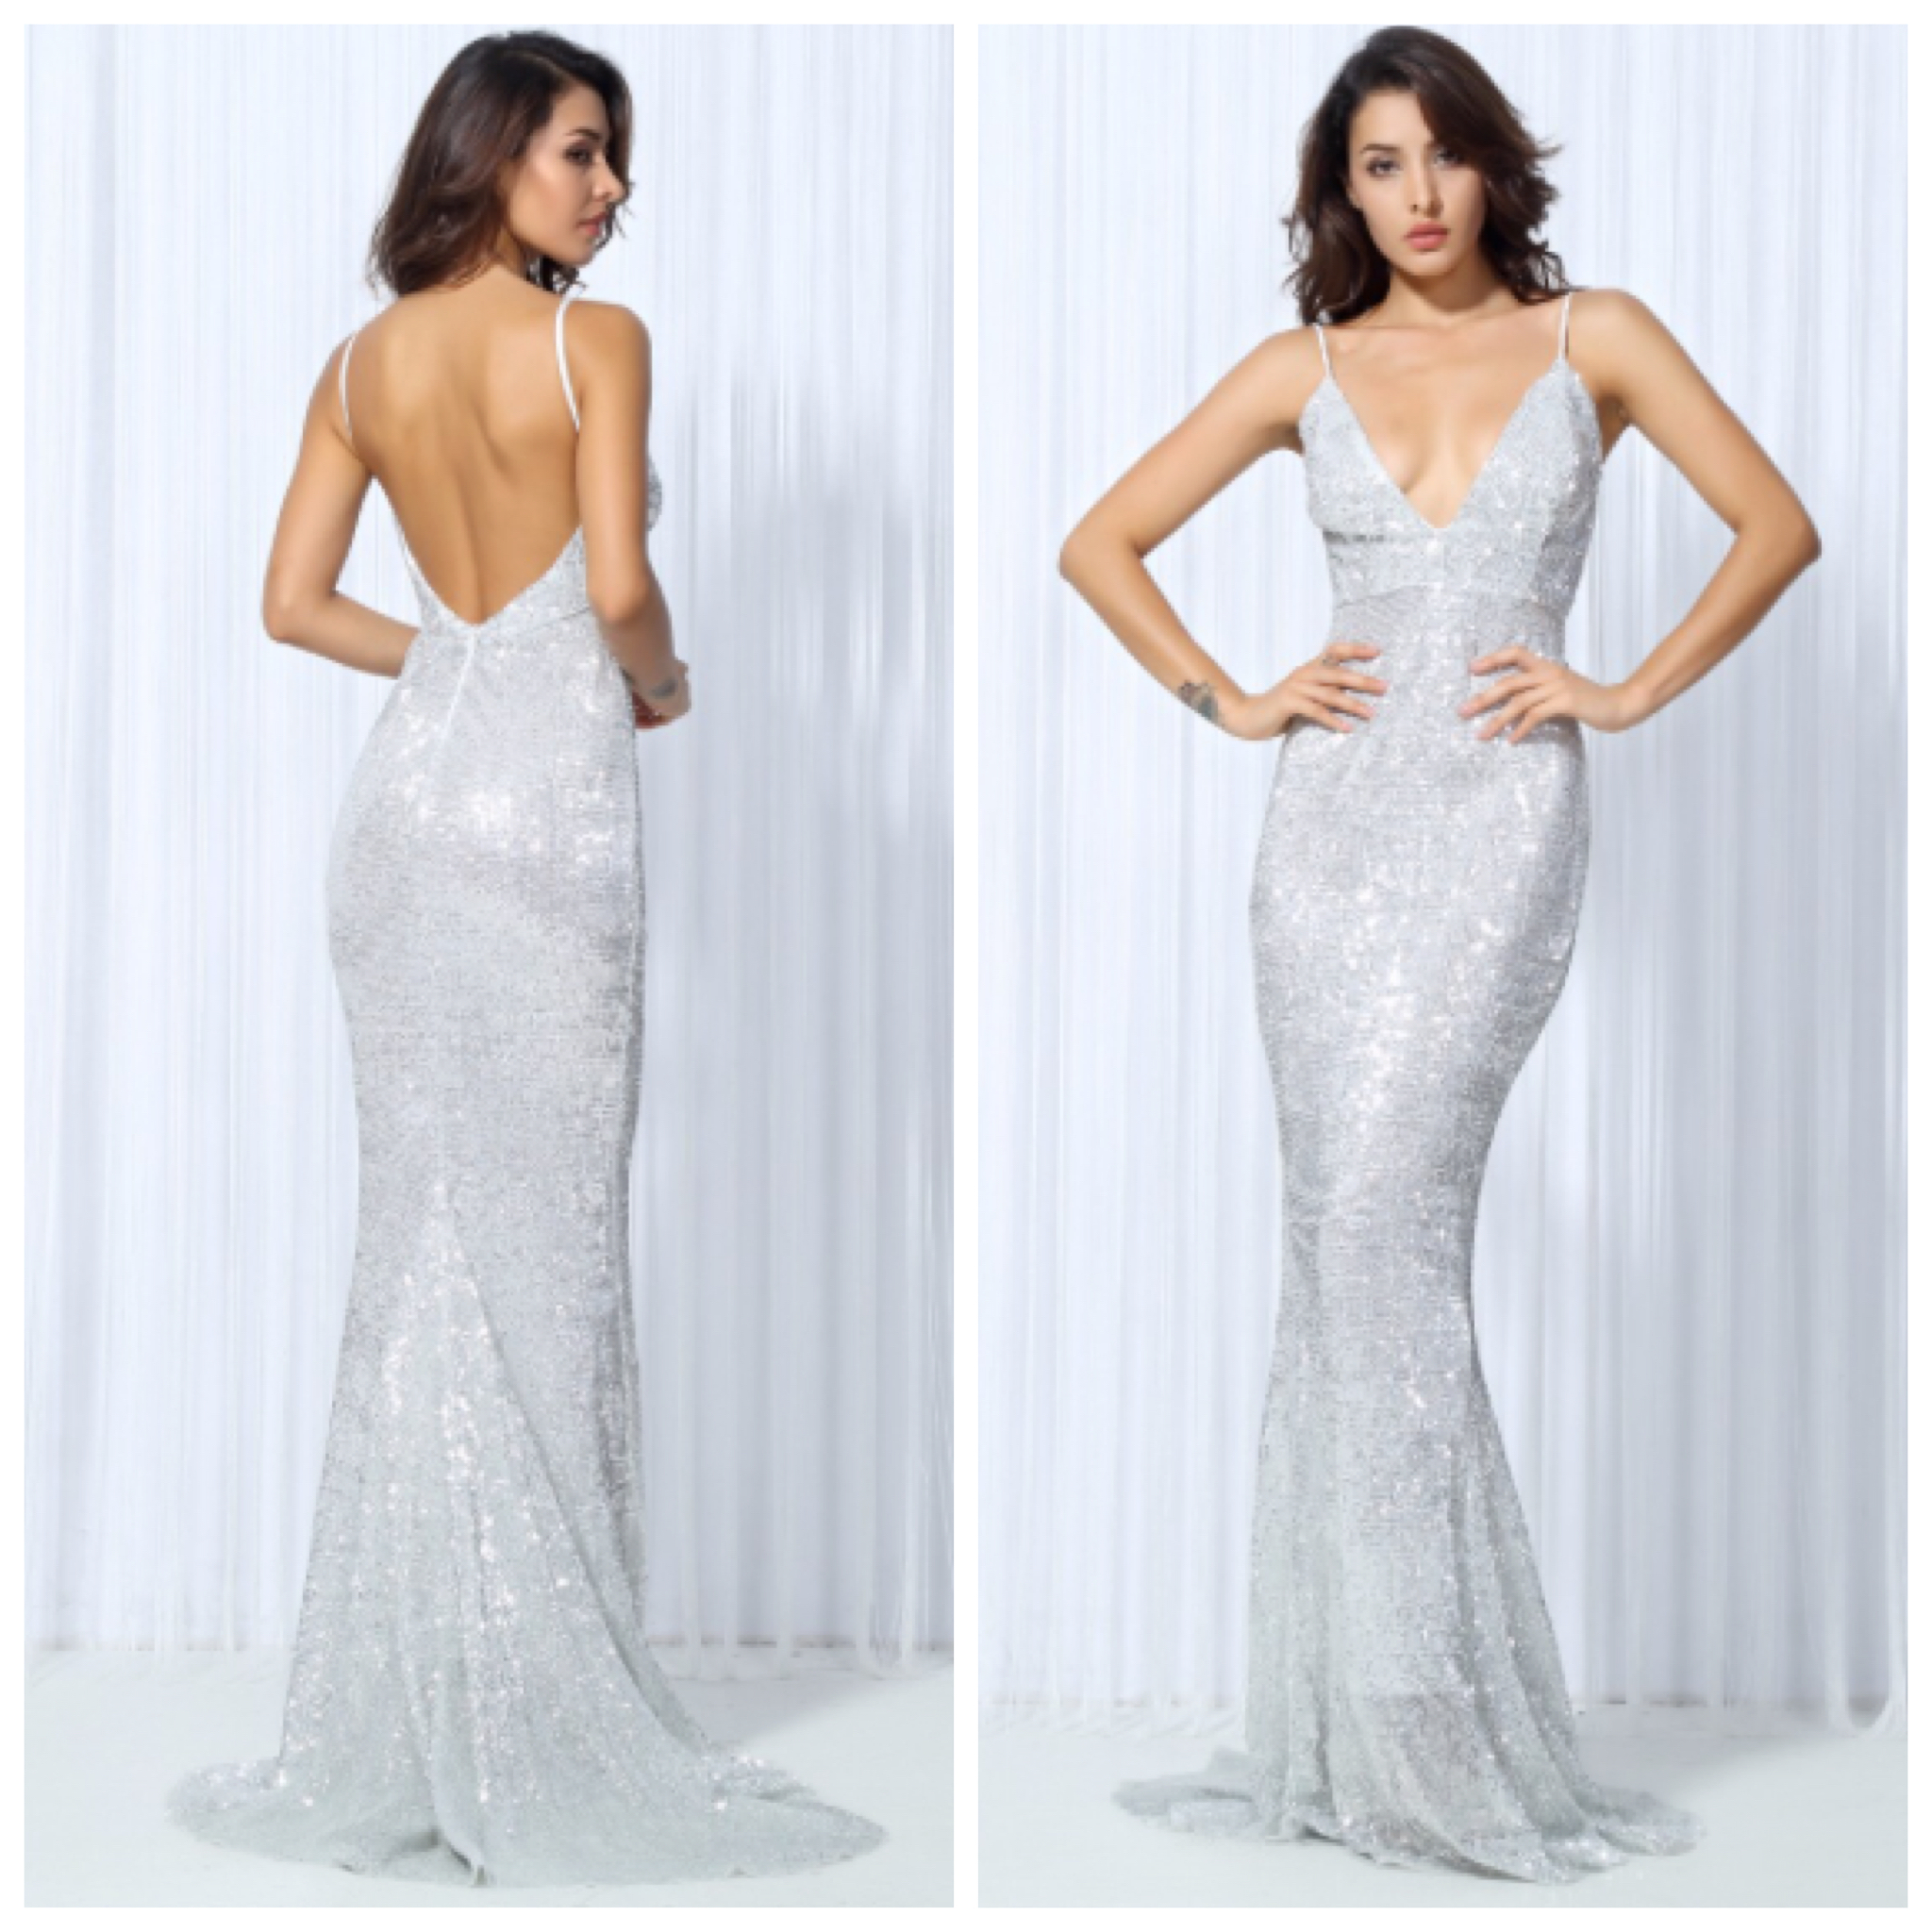 STAR WALK PLUNGE OPEN BACK SEQUIN GOWN (SILVER) · LUXE STYLE ...